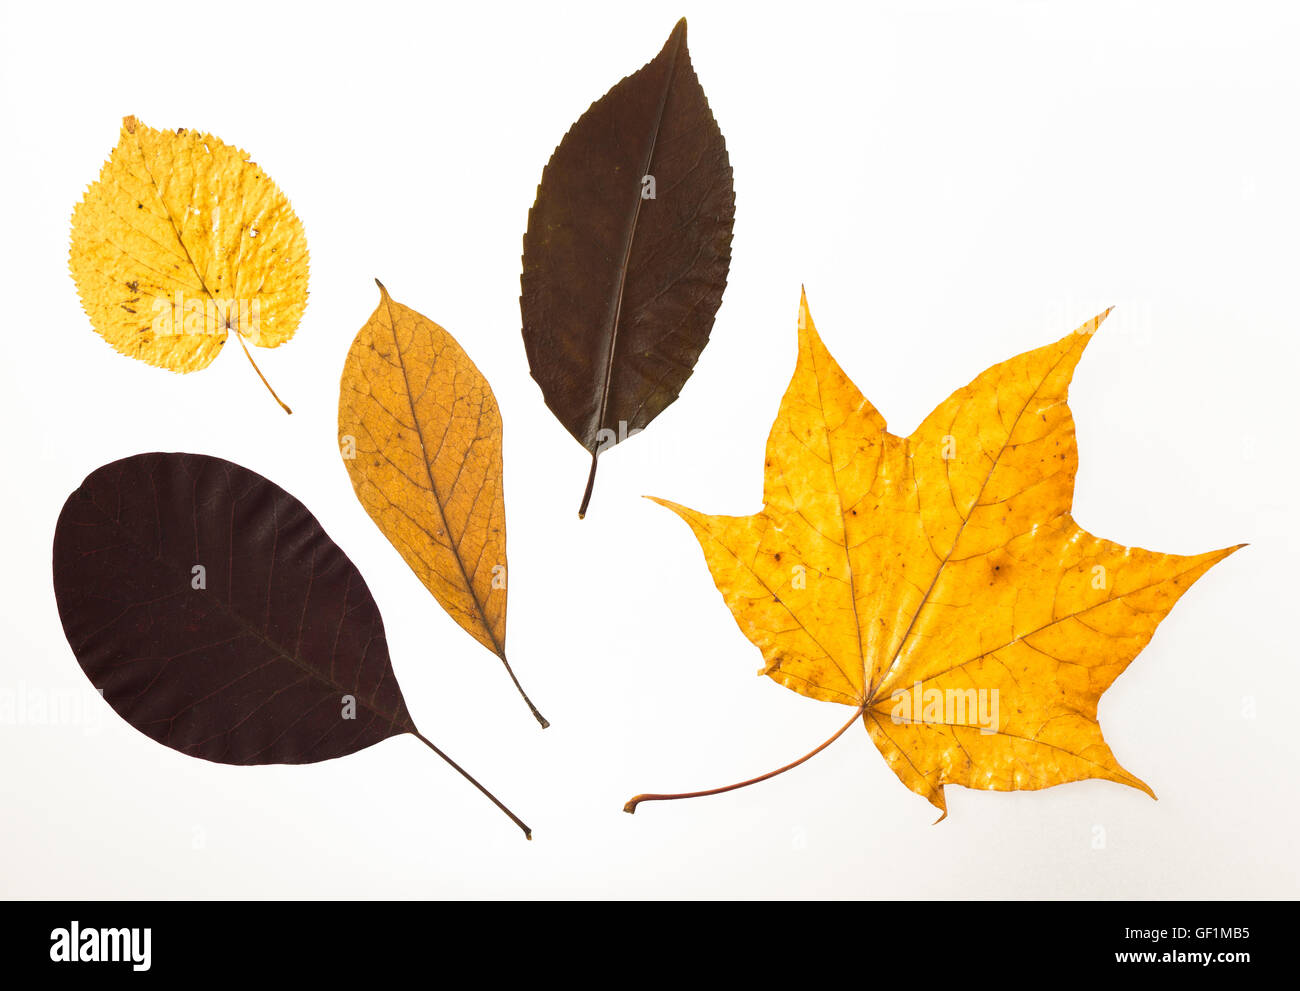 pressed leaves in yellow and brown tones - Stock Image